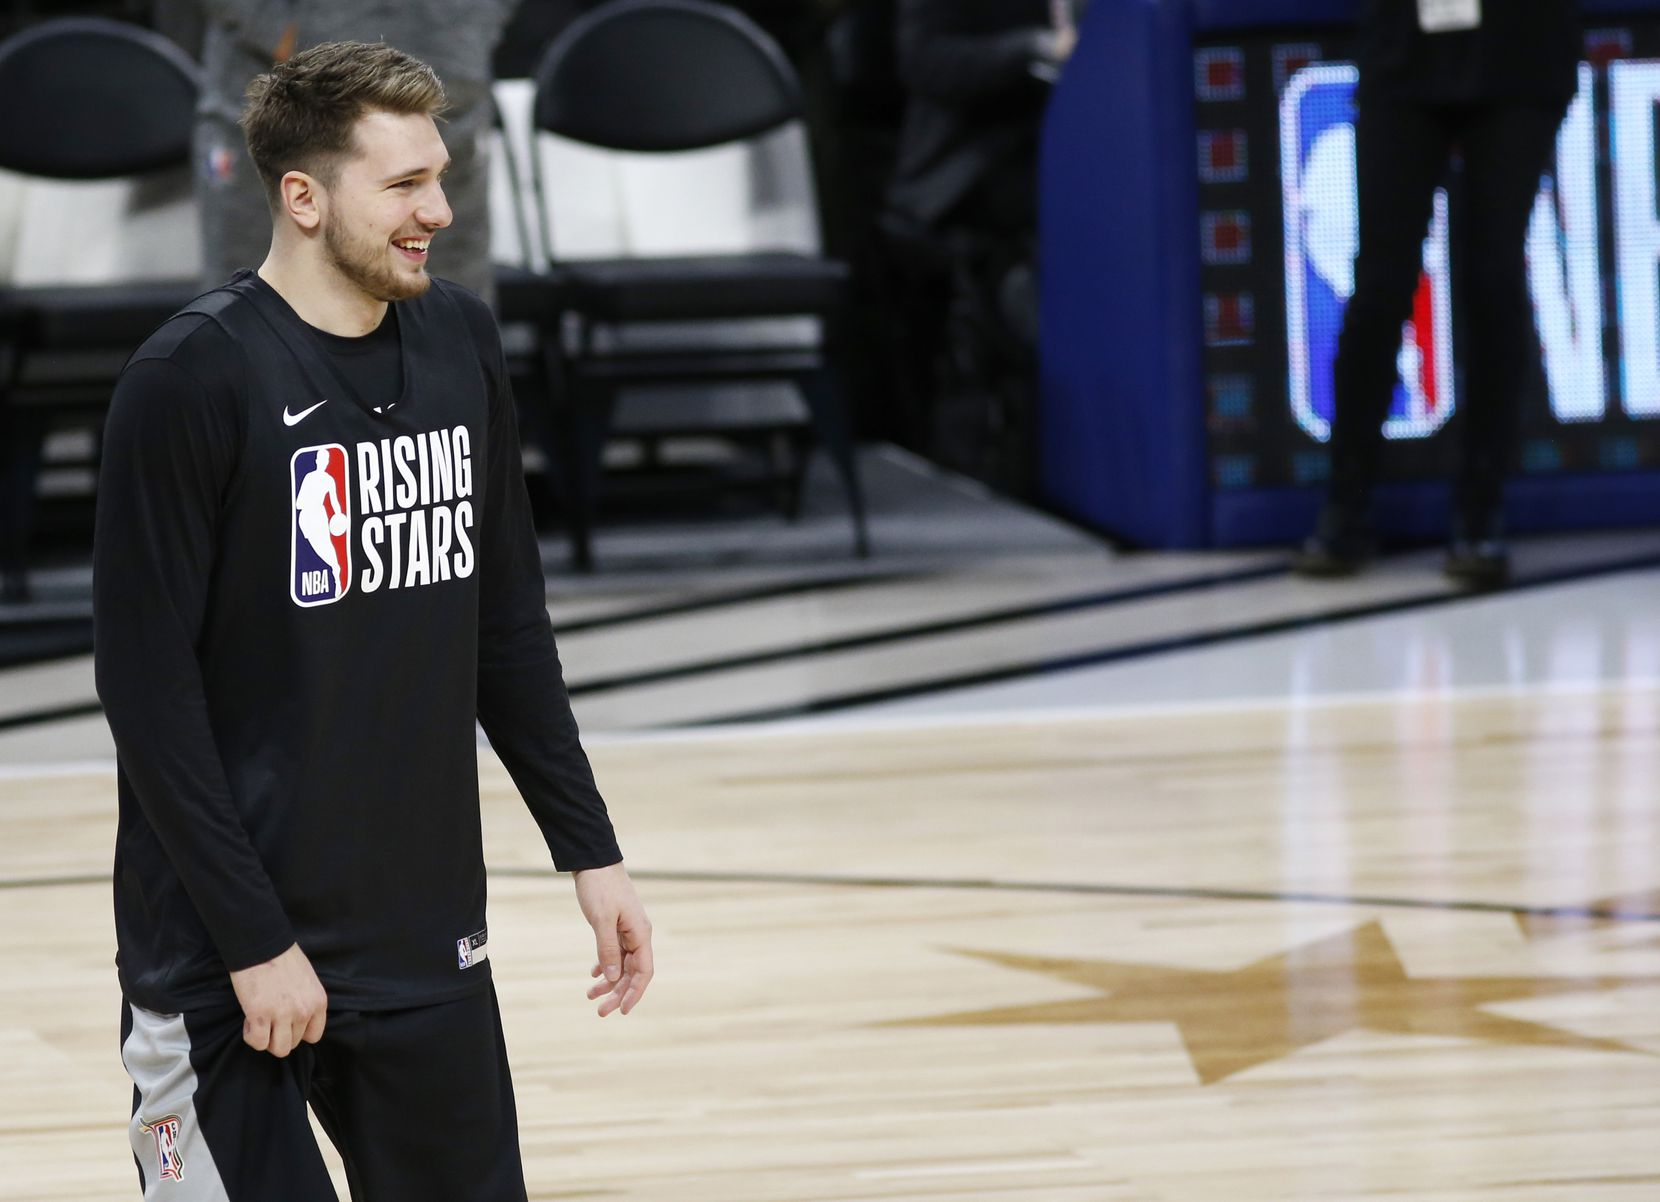 Dallas Mavericks forward Luka Doncic (77) smiles during the NBA Rising Stars practice for the World Team at Wintrust Arena during the NBA All Star 2020 event in Chicago on Friday, February 14, 2020.